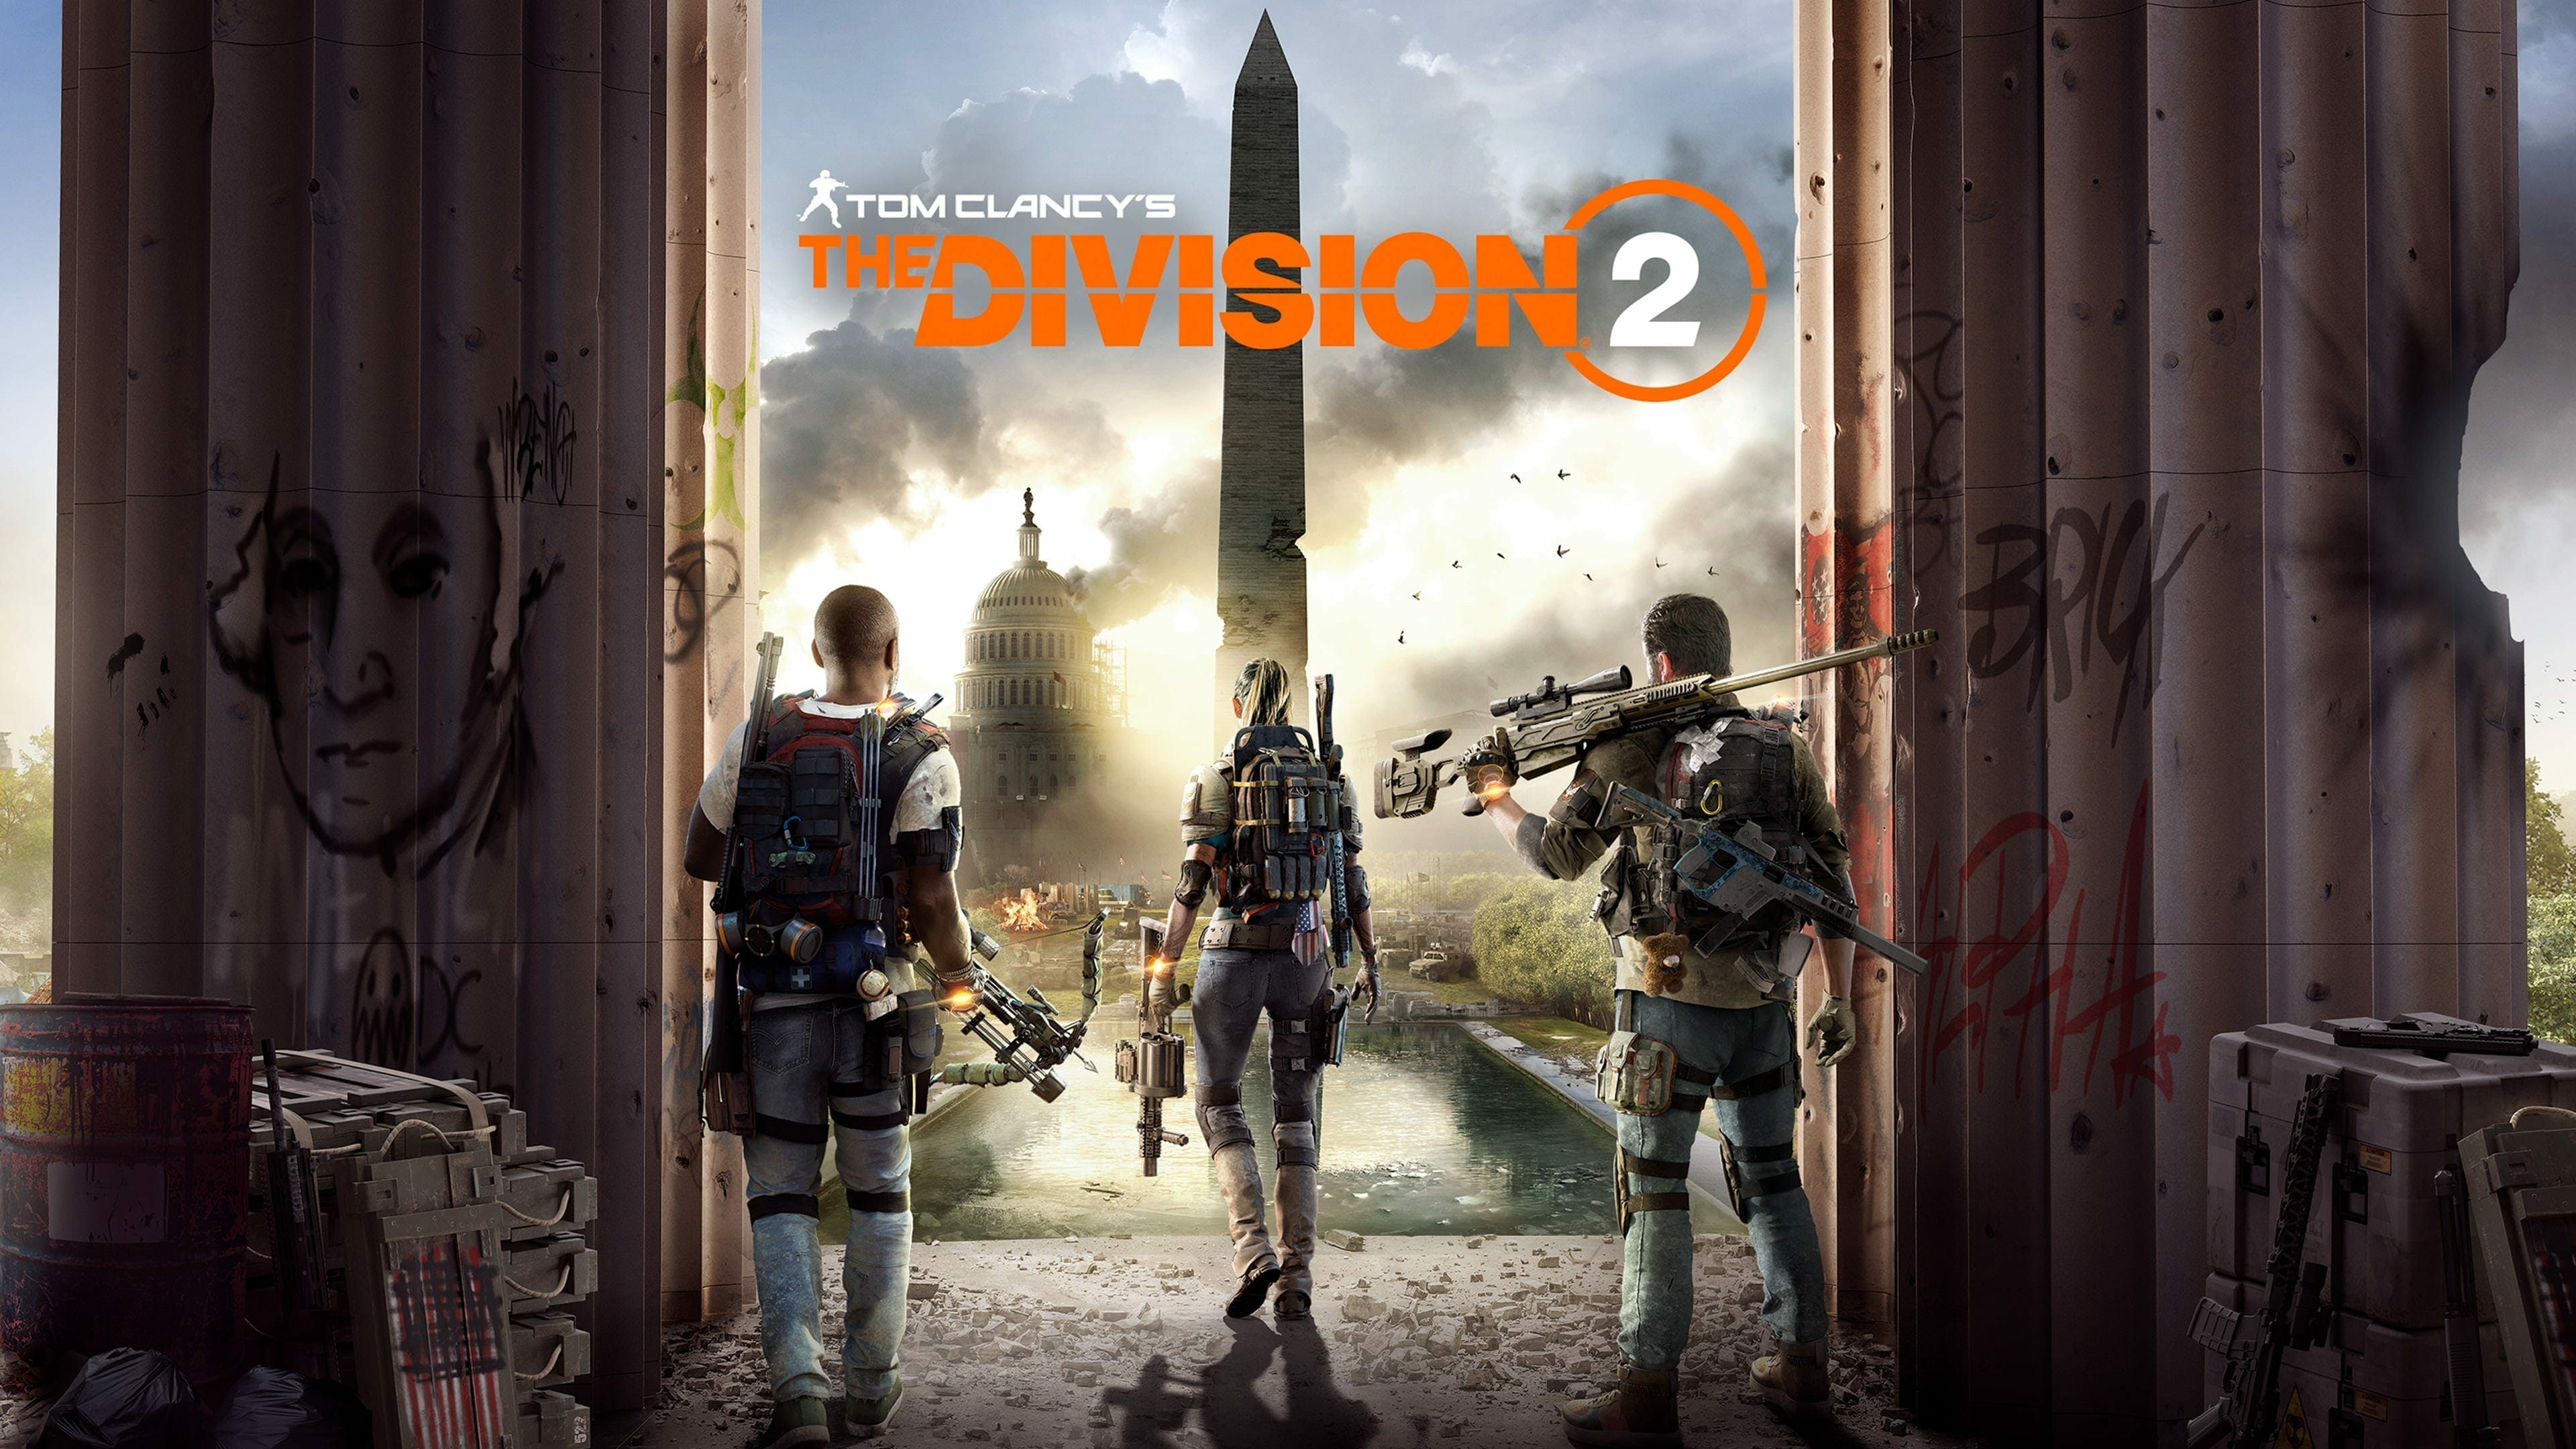 DIVISION 2 File Size